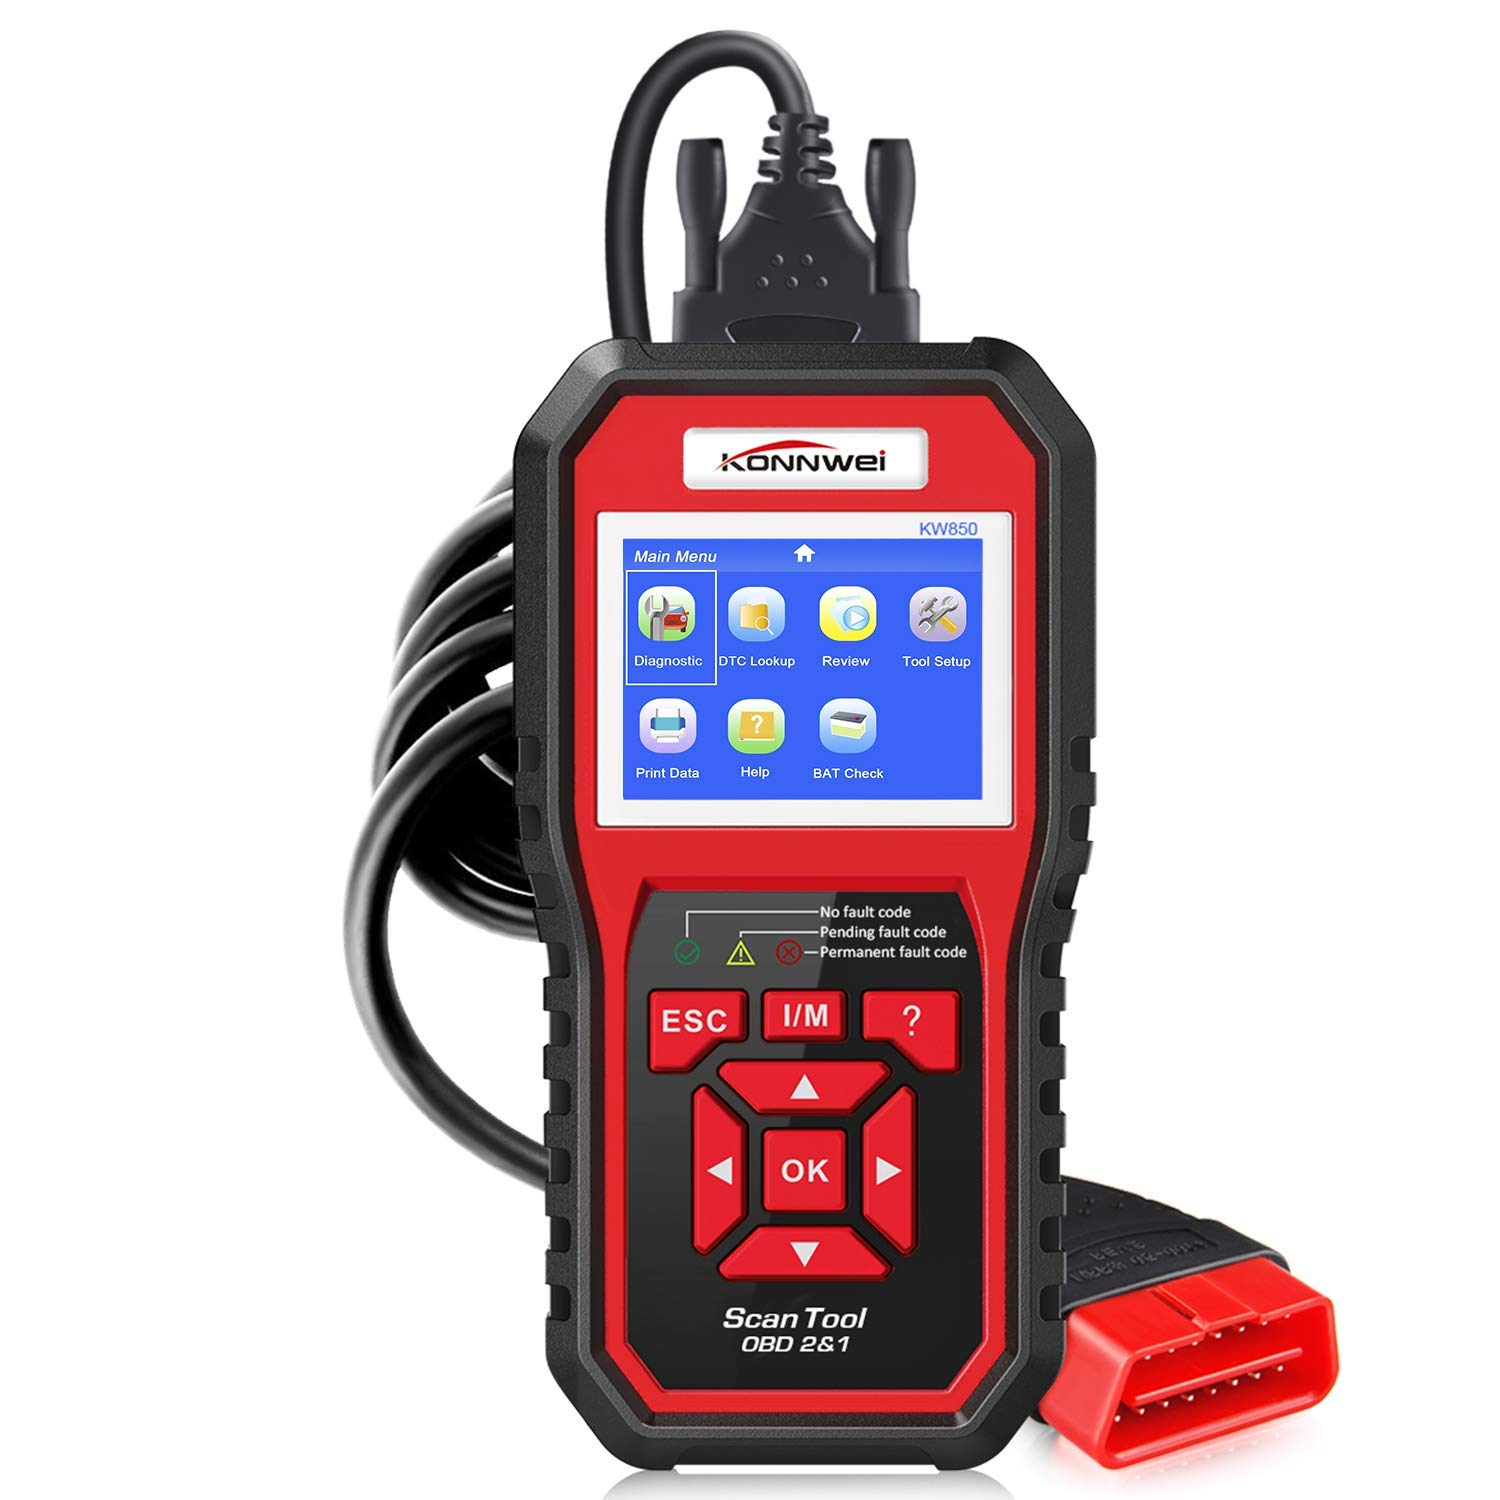 soyond Car OBD2 Scanner, OBD OBD2 CAN Code Reader Auto OBDII Diagnostic Scan Tool Engine Tools with Check Engine Light